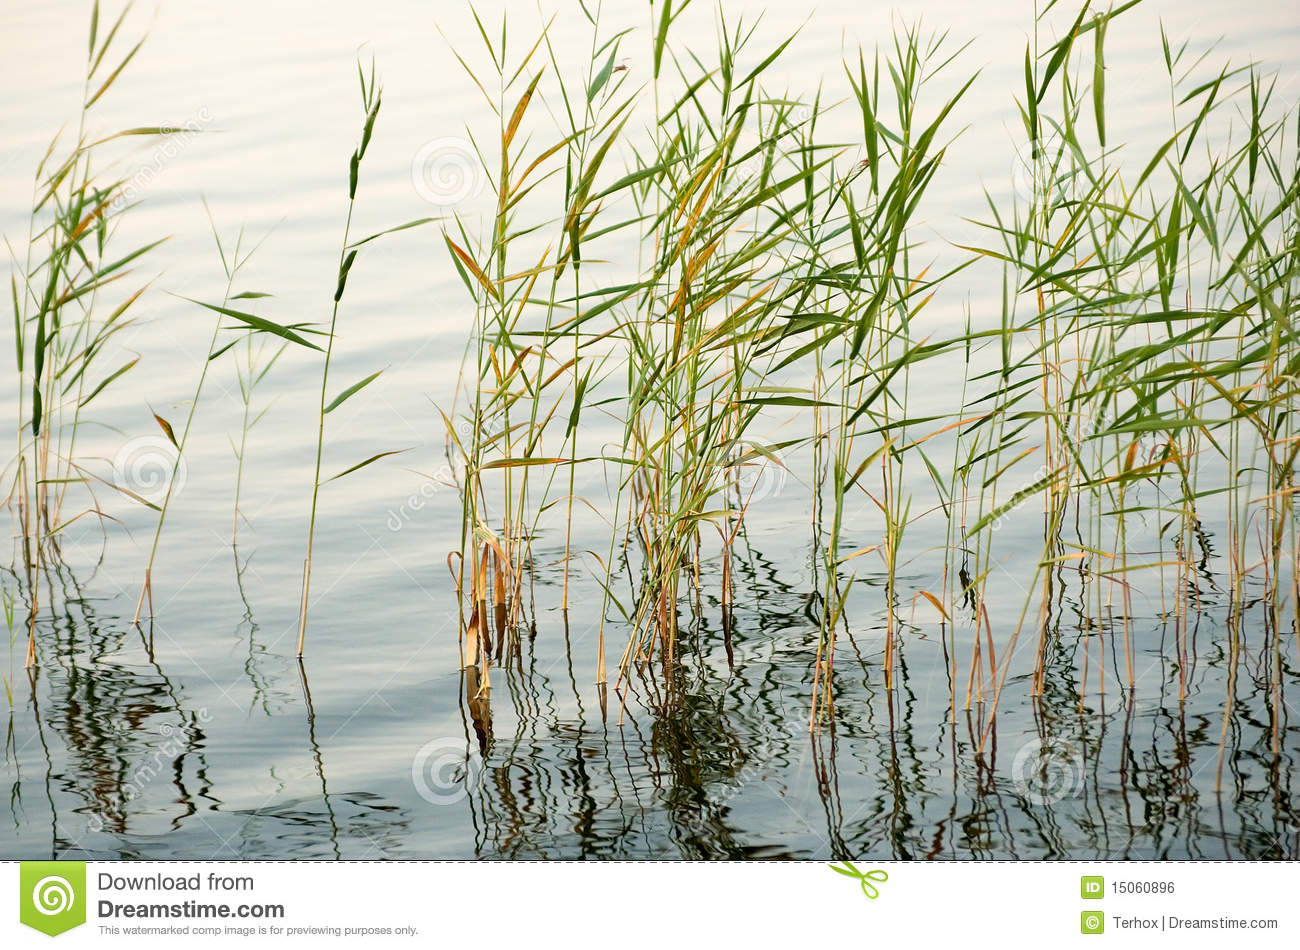 Details of reeds or grass growing in shallow water at a pond or lake.